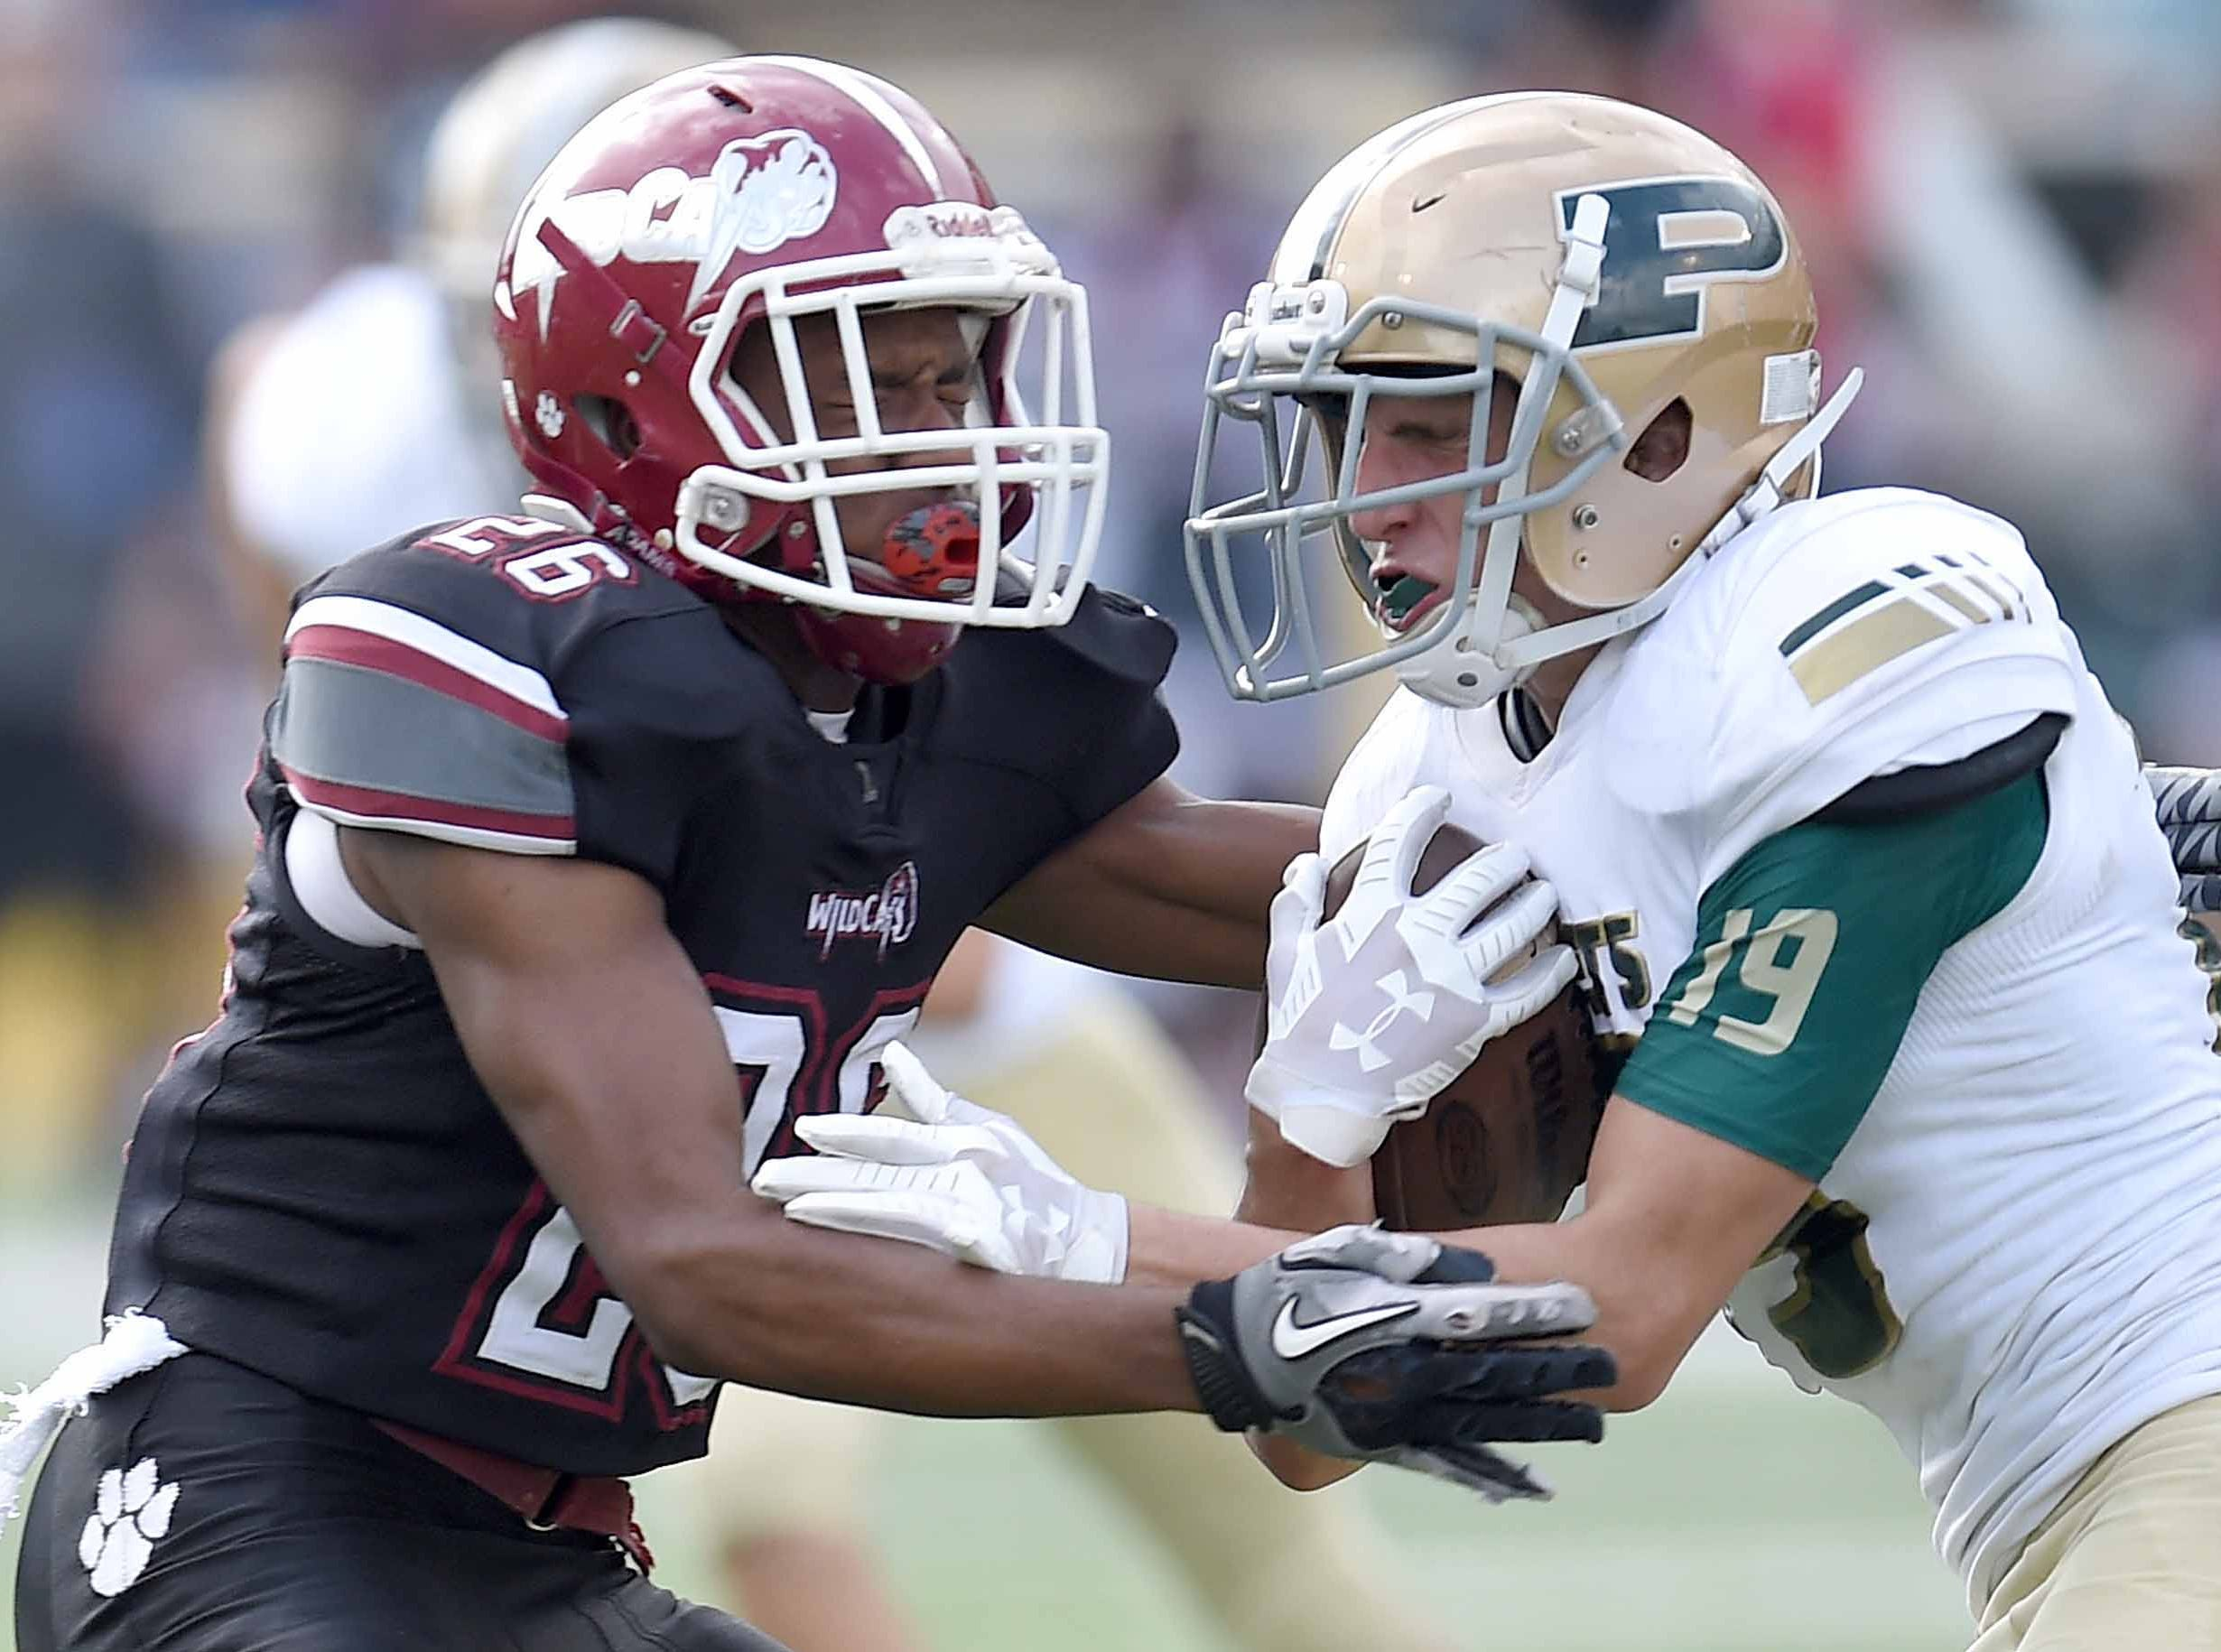 Poplarville's Casin Sones (19) returns a punt against Louisville's Keandre Gill (26) on Saturday, December 1, 2018, in the MHSAA BlueCross BlueShield Gridiron Classic High School Football Championships in M.M. Roberts Stadium on the University of Southern Mississippi campus in Hattiesburg, Miss.